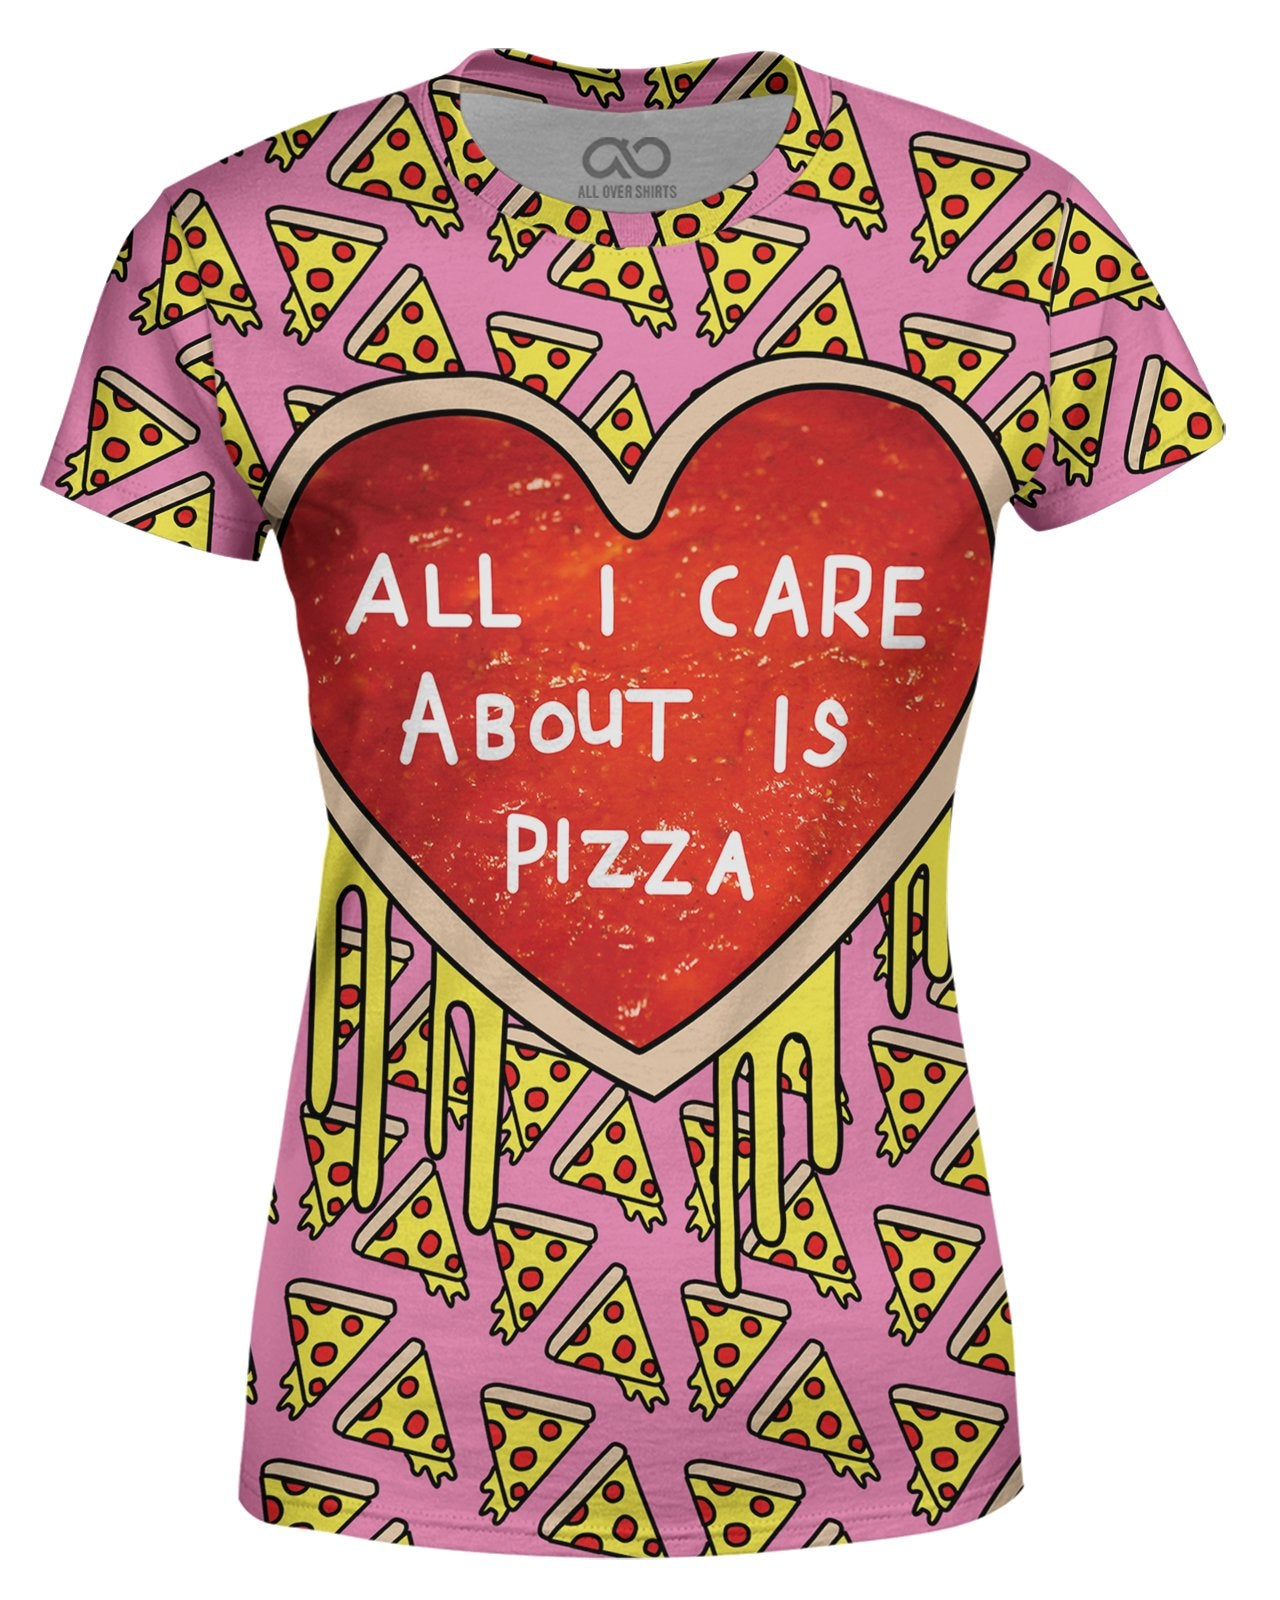 All I Care About Is Pizza Women's T-shirt